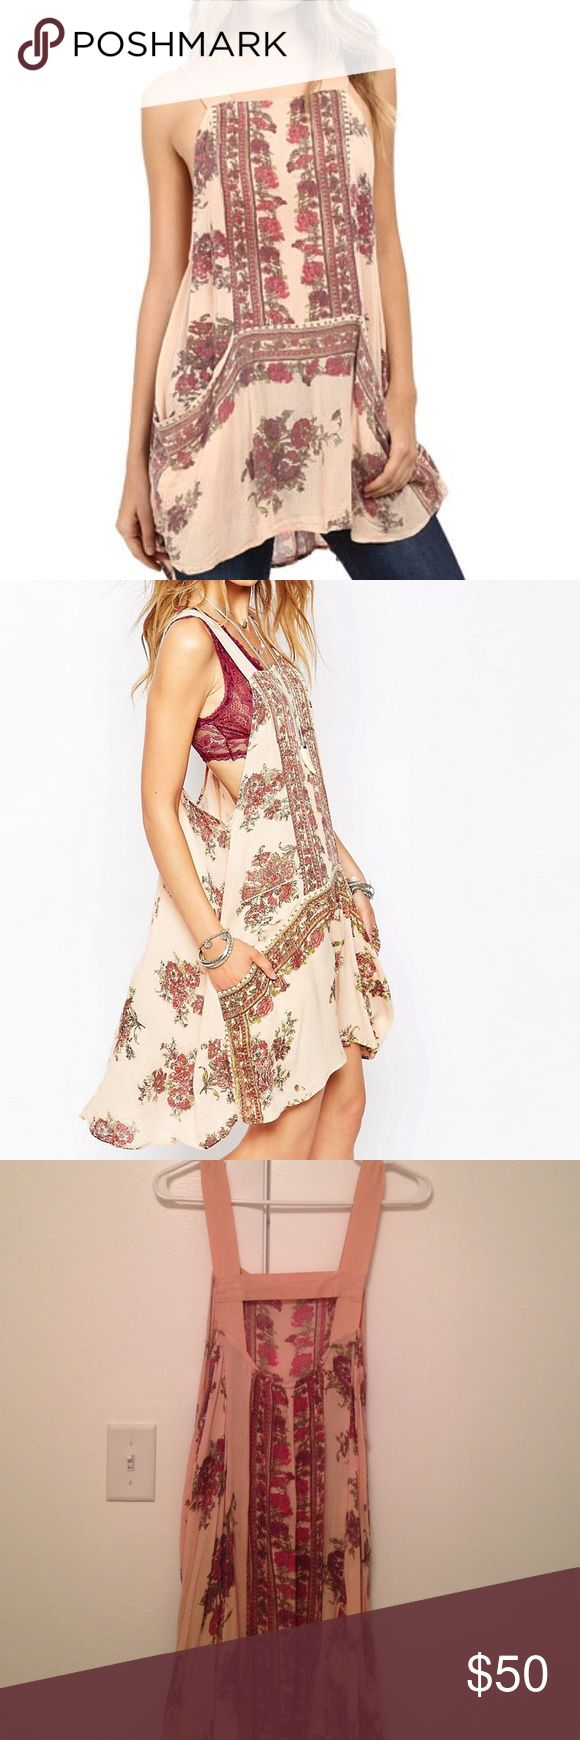 Free People Paradise Song Printed Tunic Sz L Free People paradise song printed tunic, only worn a couple of times. Love this paired with a bralette or a cardigan or sweater to wear into fall. Have to downsize my closet but I love this piece! Has a slightly oversized, flowy fit. Make me an offer💥 Free People Dresses Mini